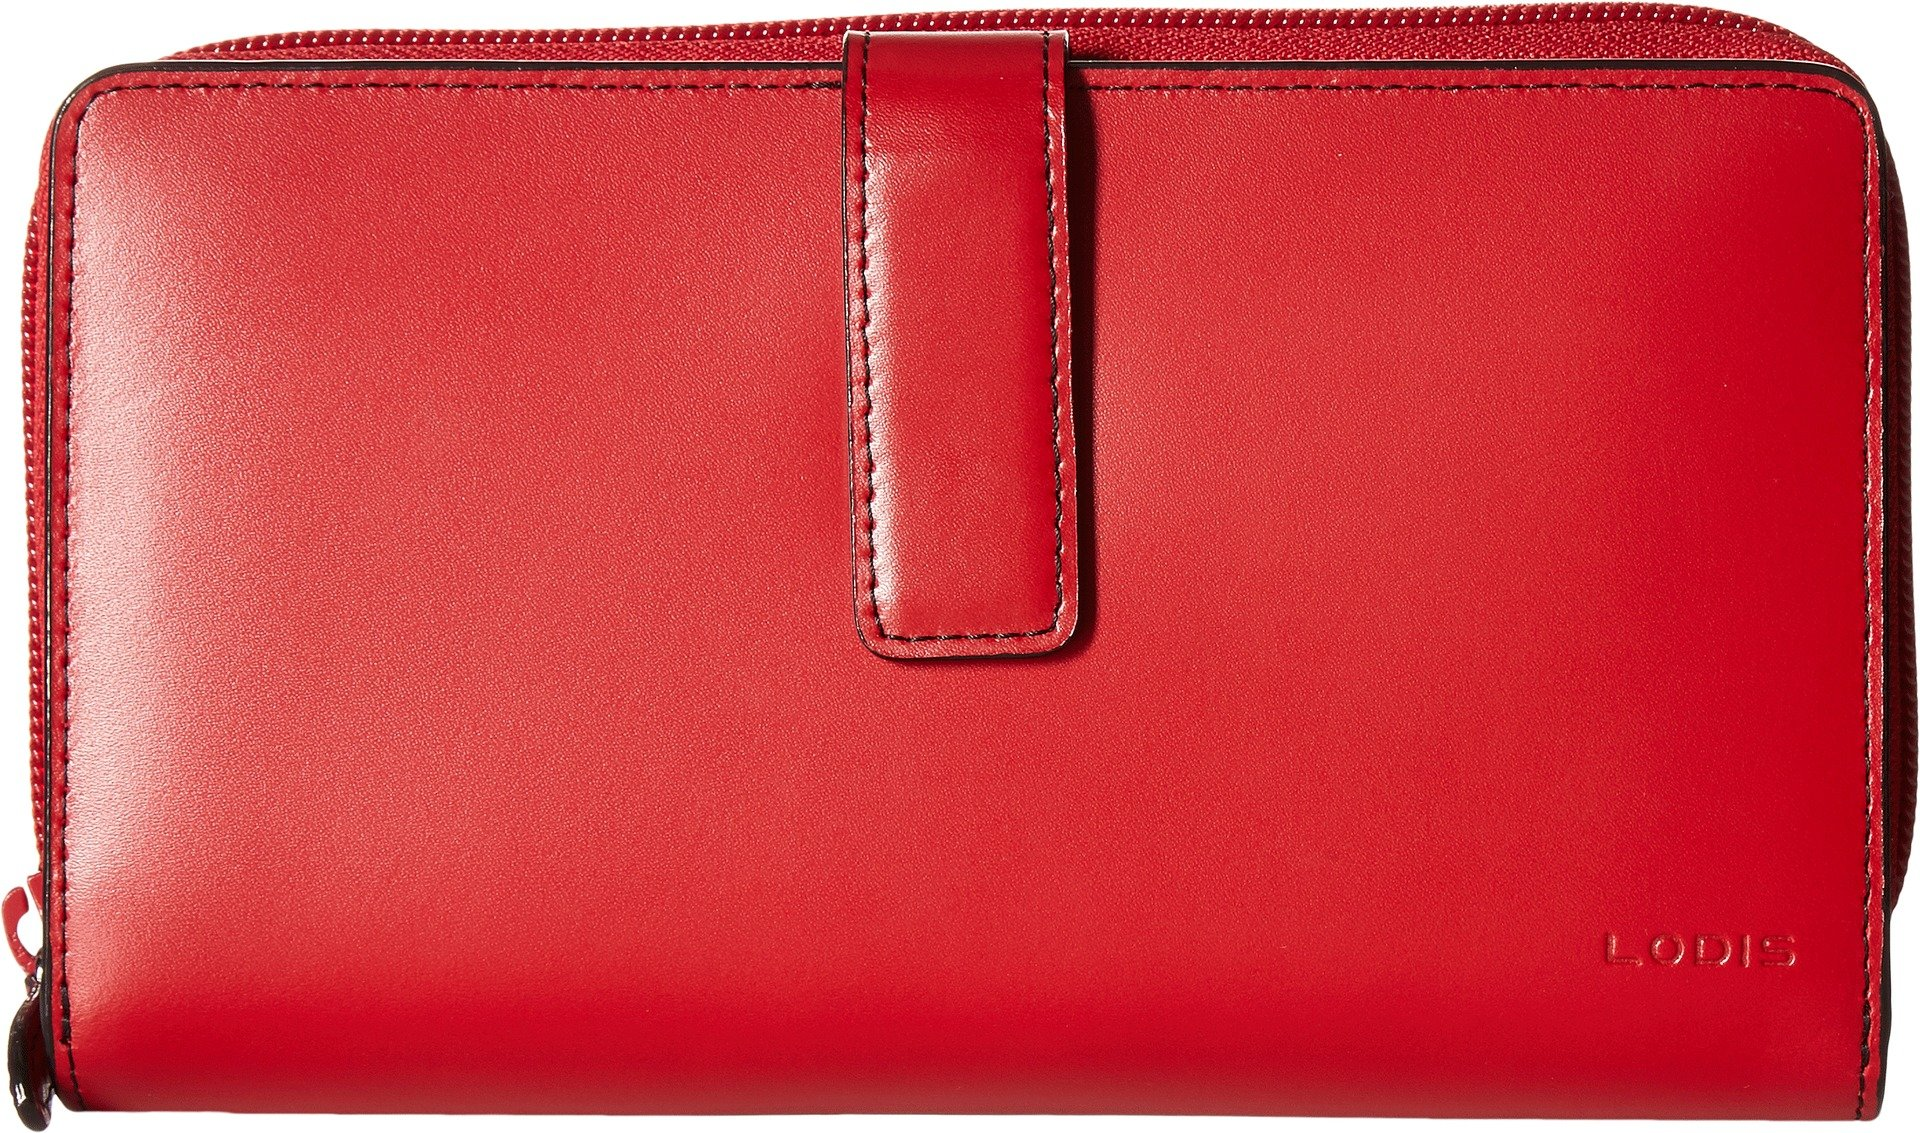 Lodis Audrey Deluxe RFID Checkbook Clutch (New Red) by Lodis